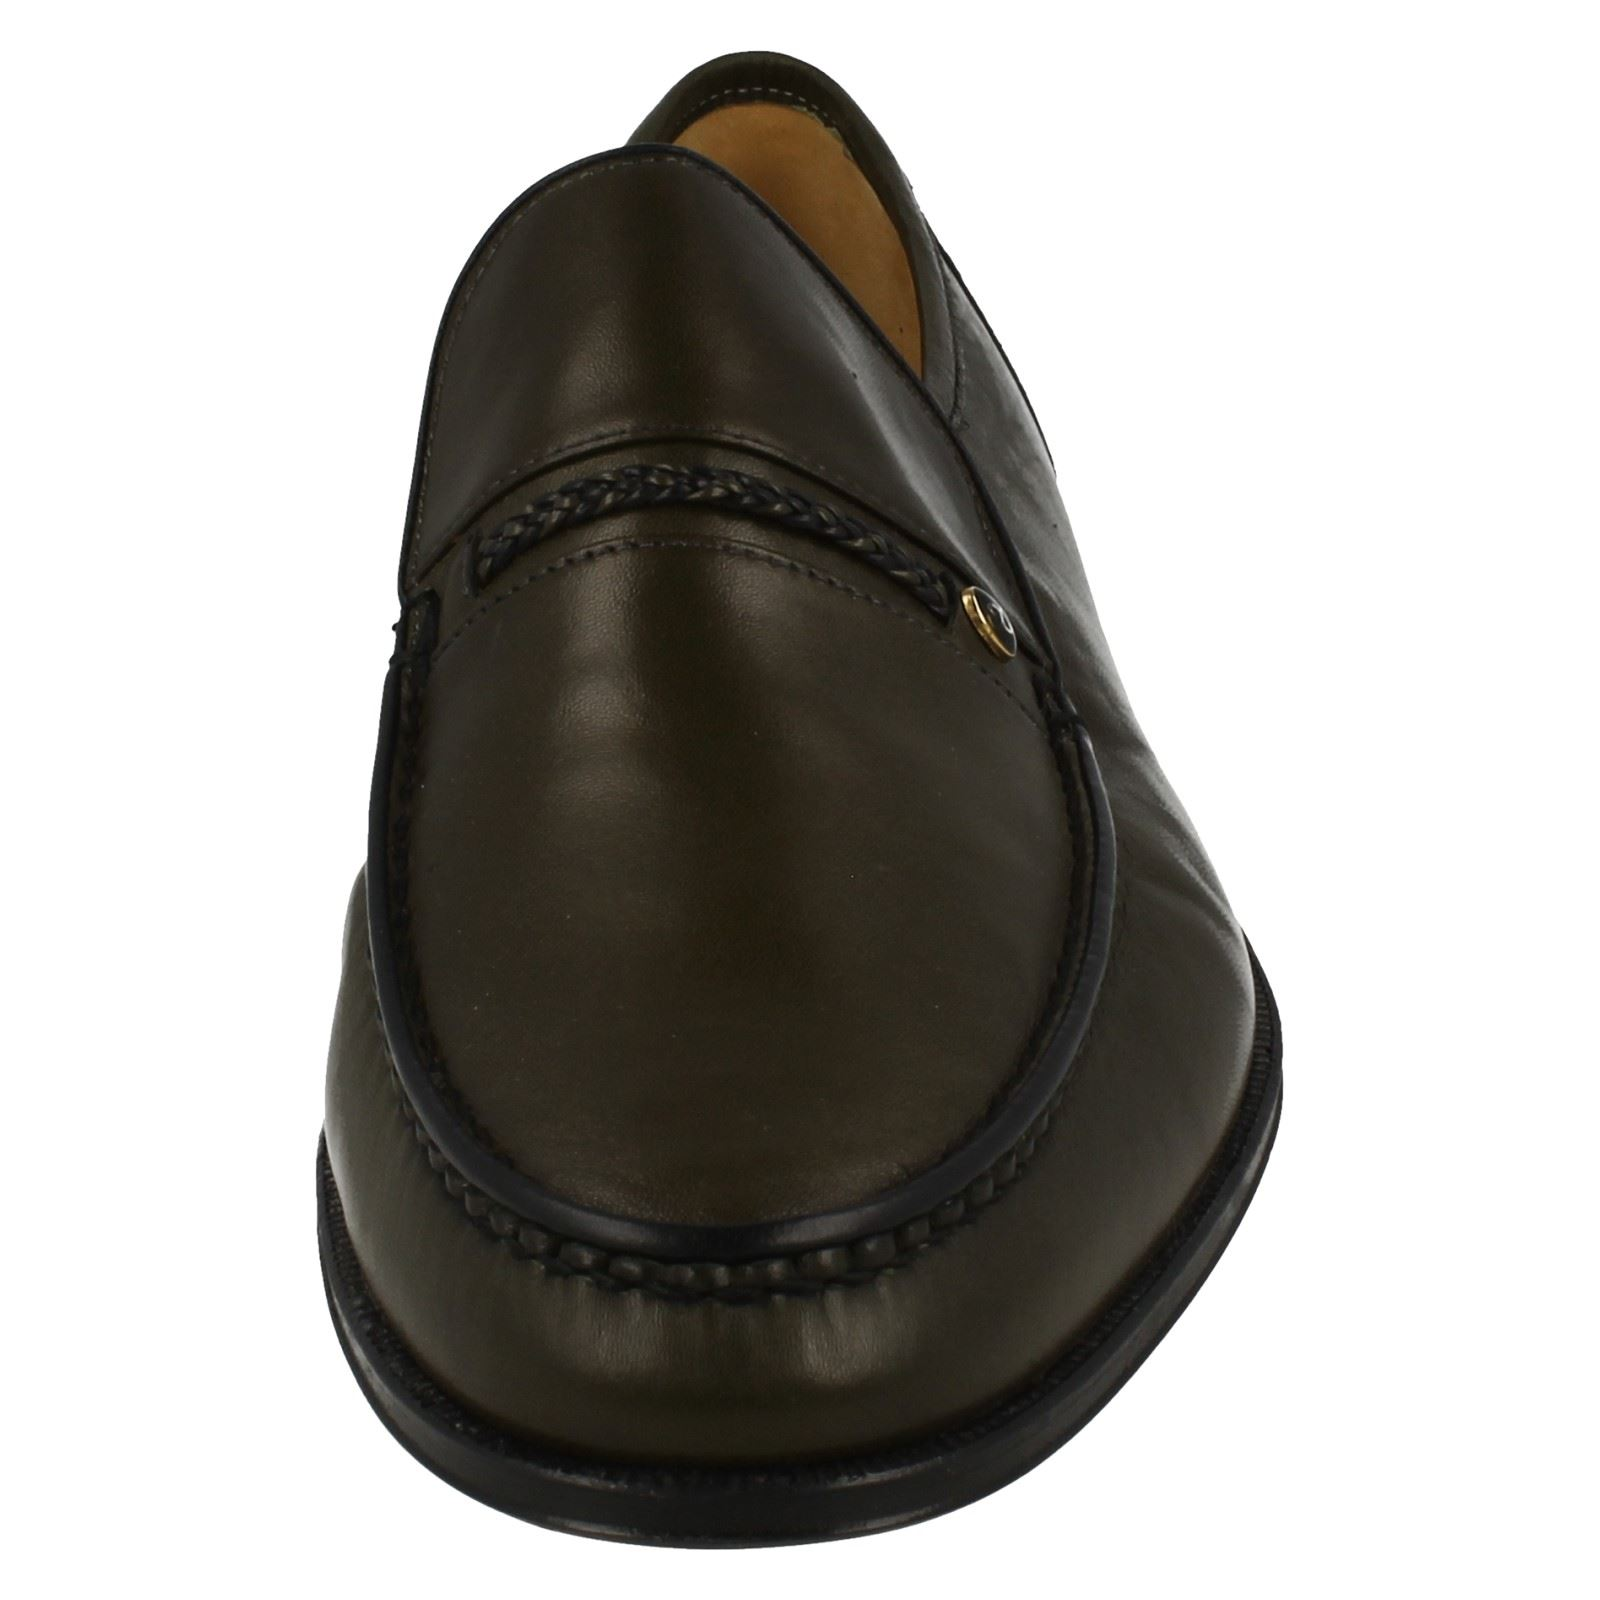 Mens Grenson Classic Moccasin Leather Slip On Shoes - Amos Amos Amos 4997fe